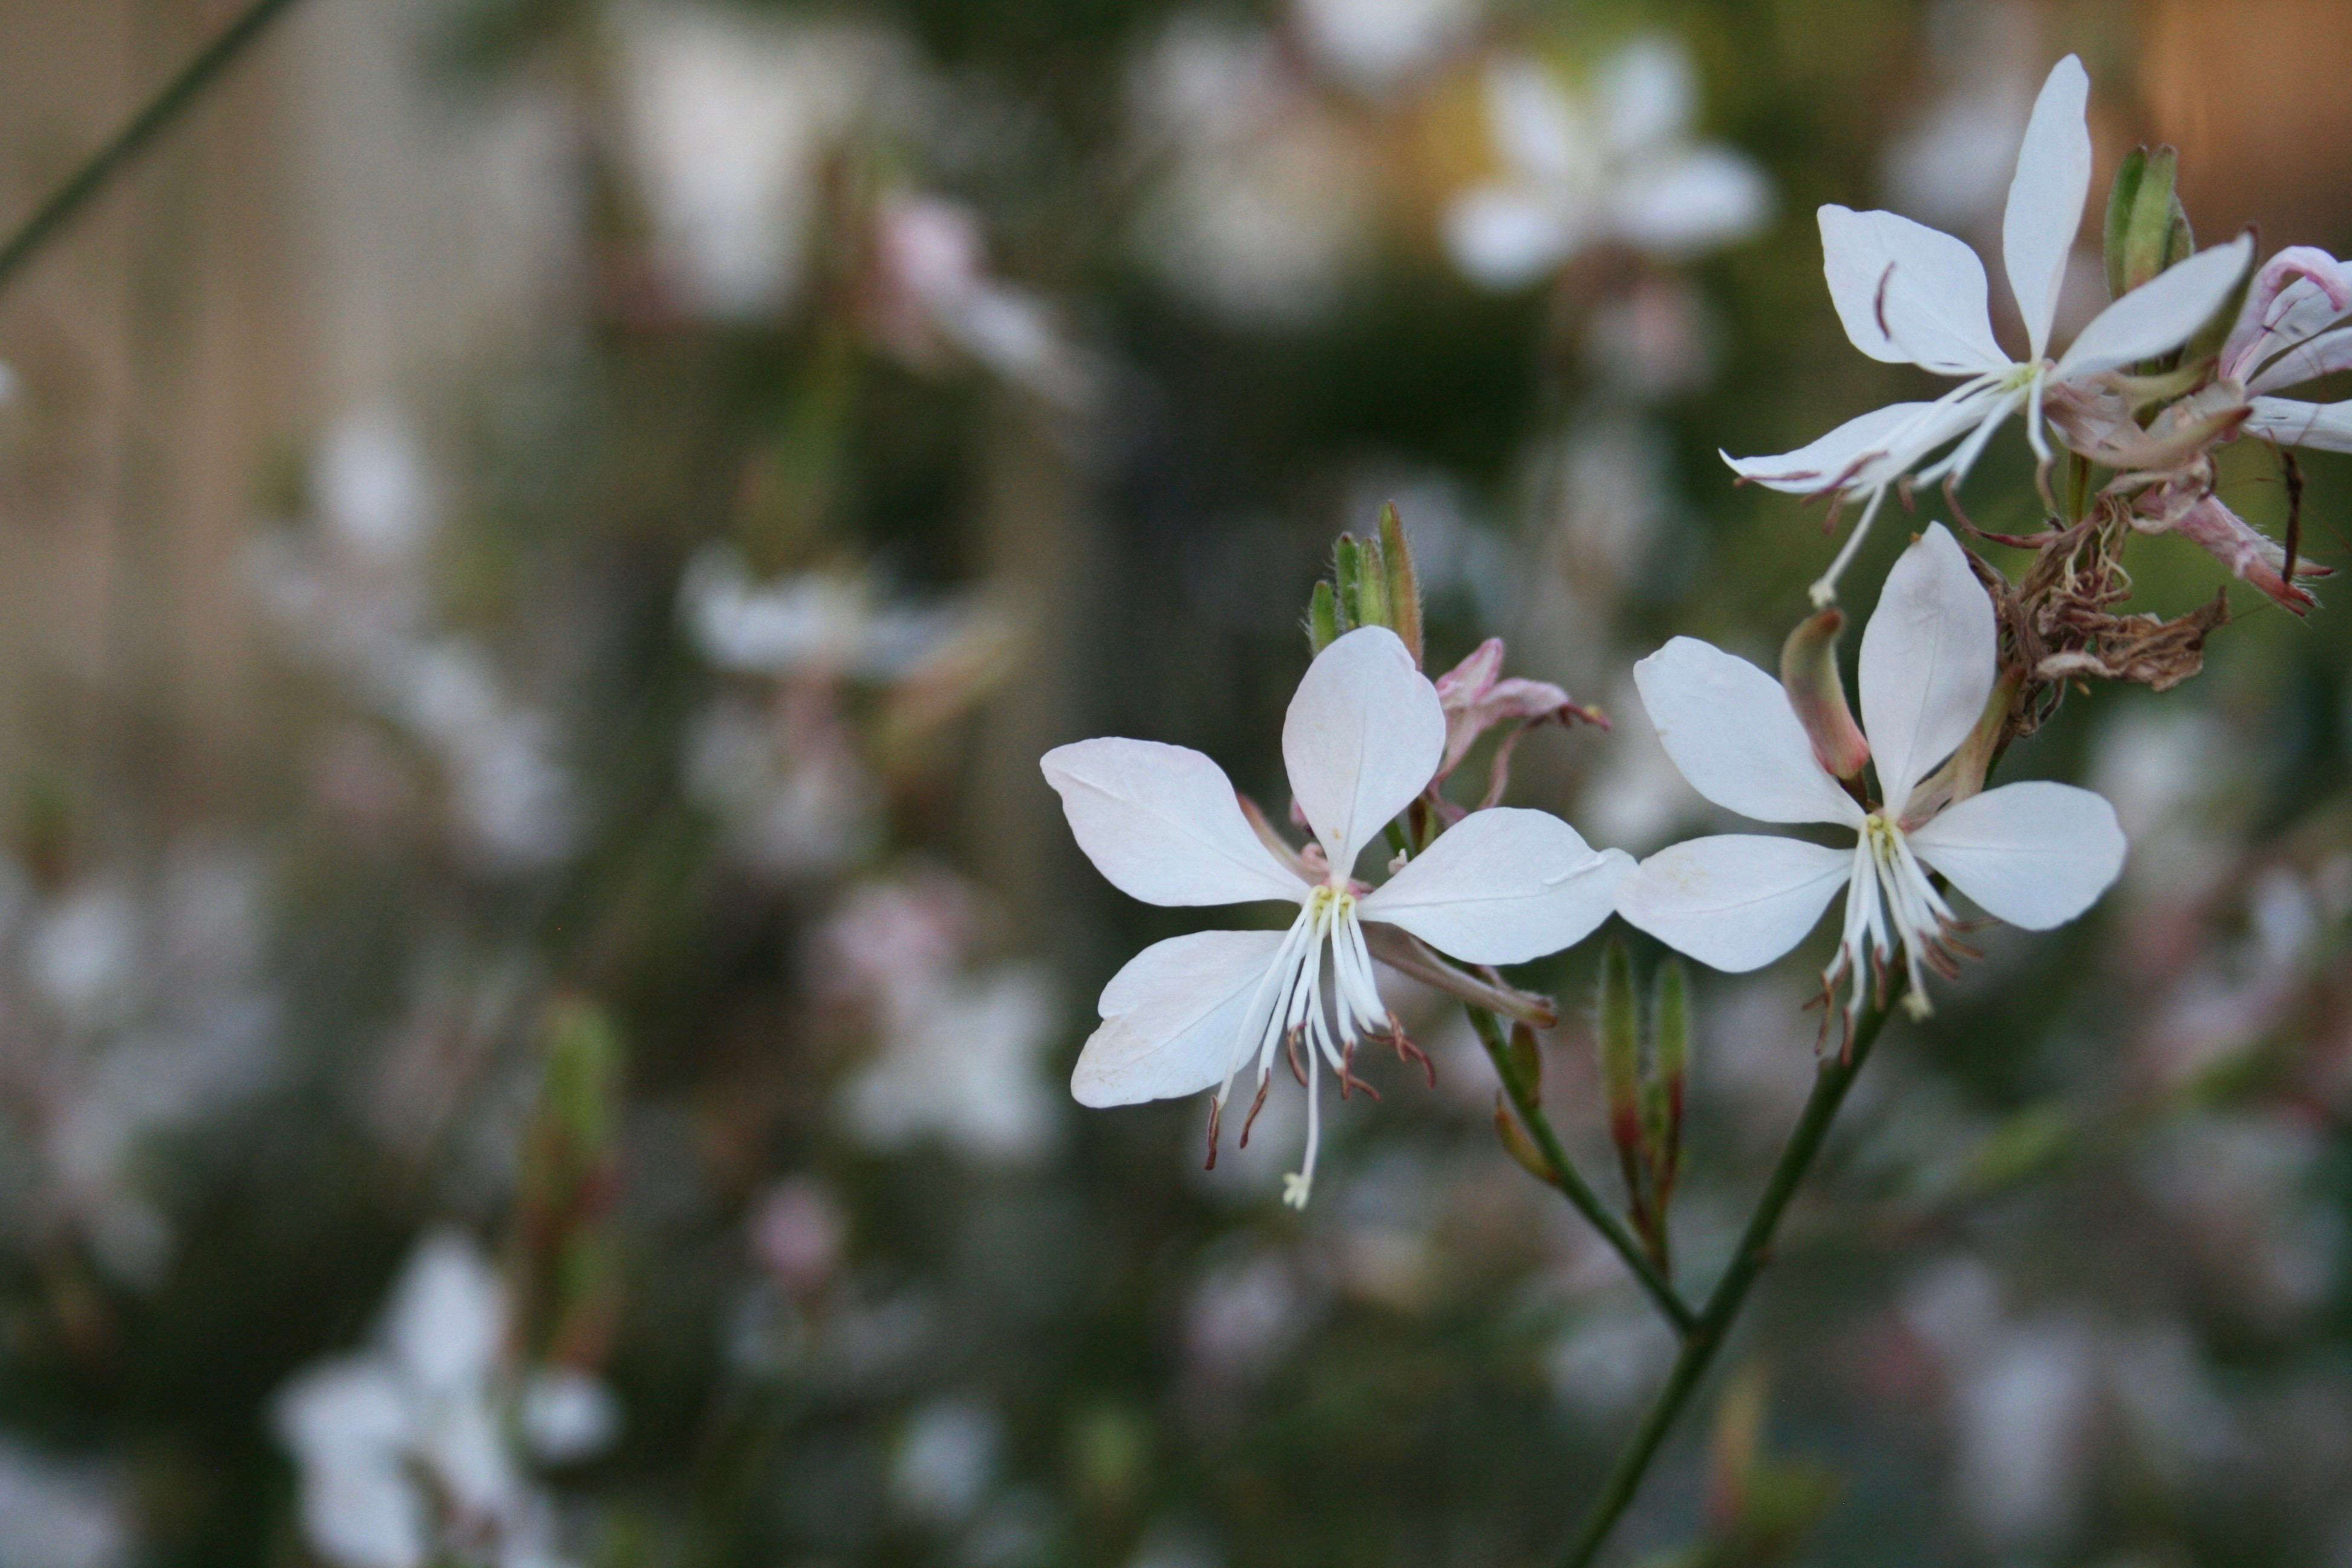 How To Successfully Grow Gaura A Field Guide To Planting Care And